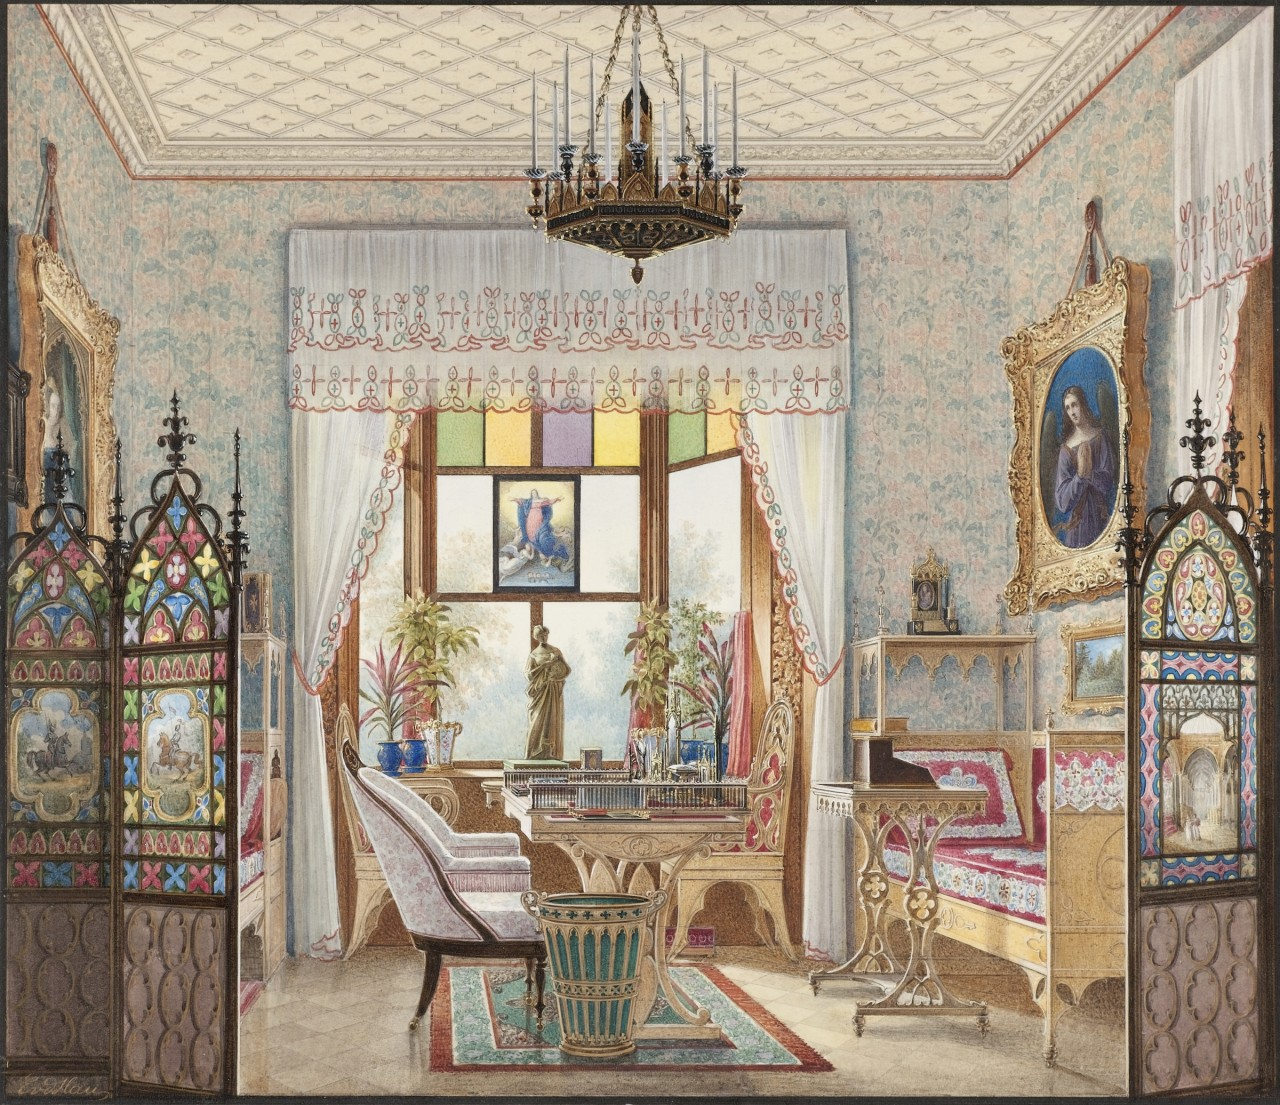 domestic interior paintings show how the 1 lived in the 19th century